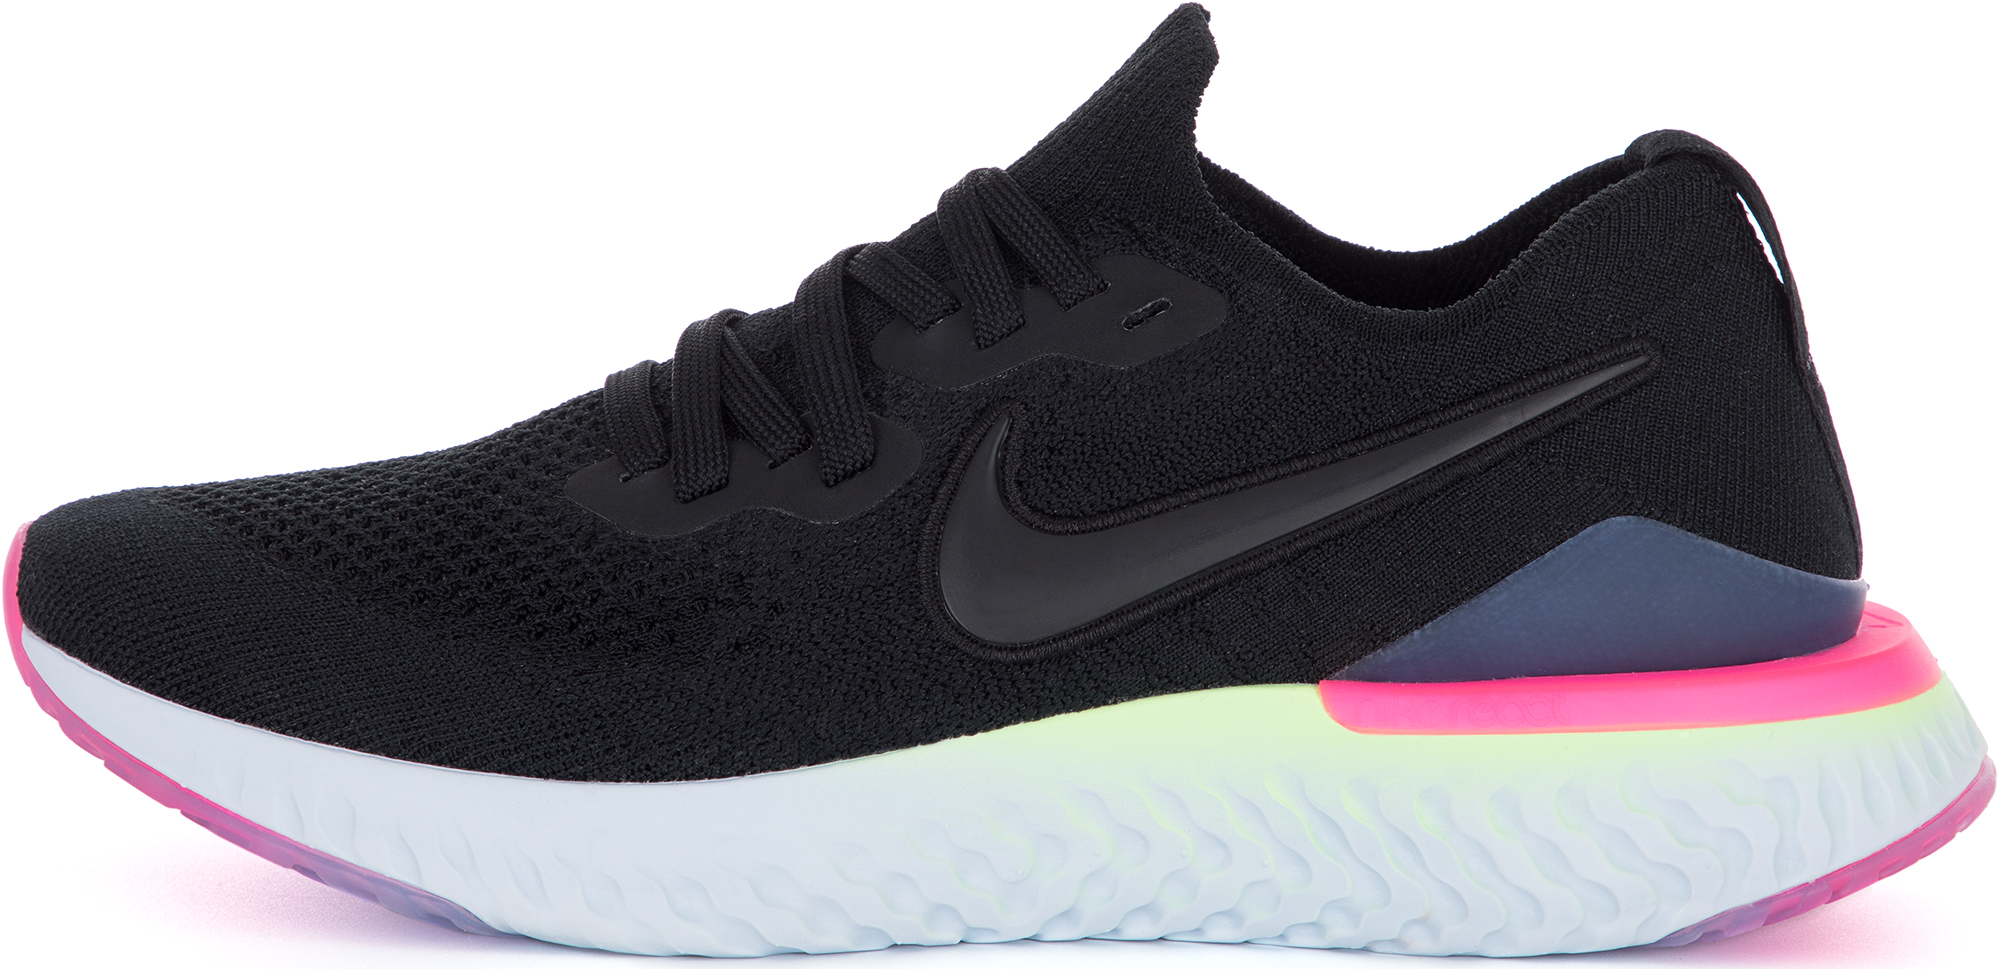 Nike Кроссовки женские Nike Epic React Flyknit 2, размер 39